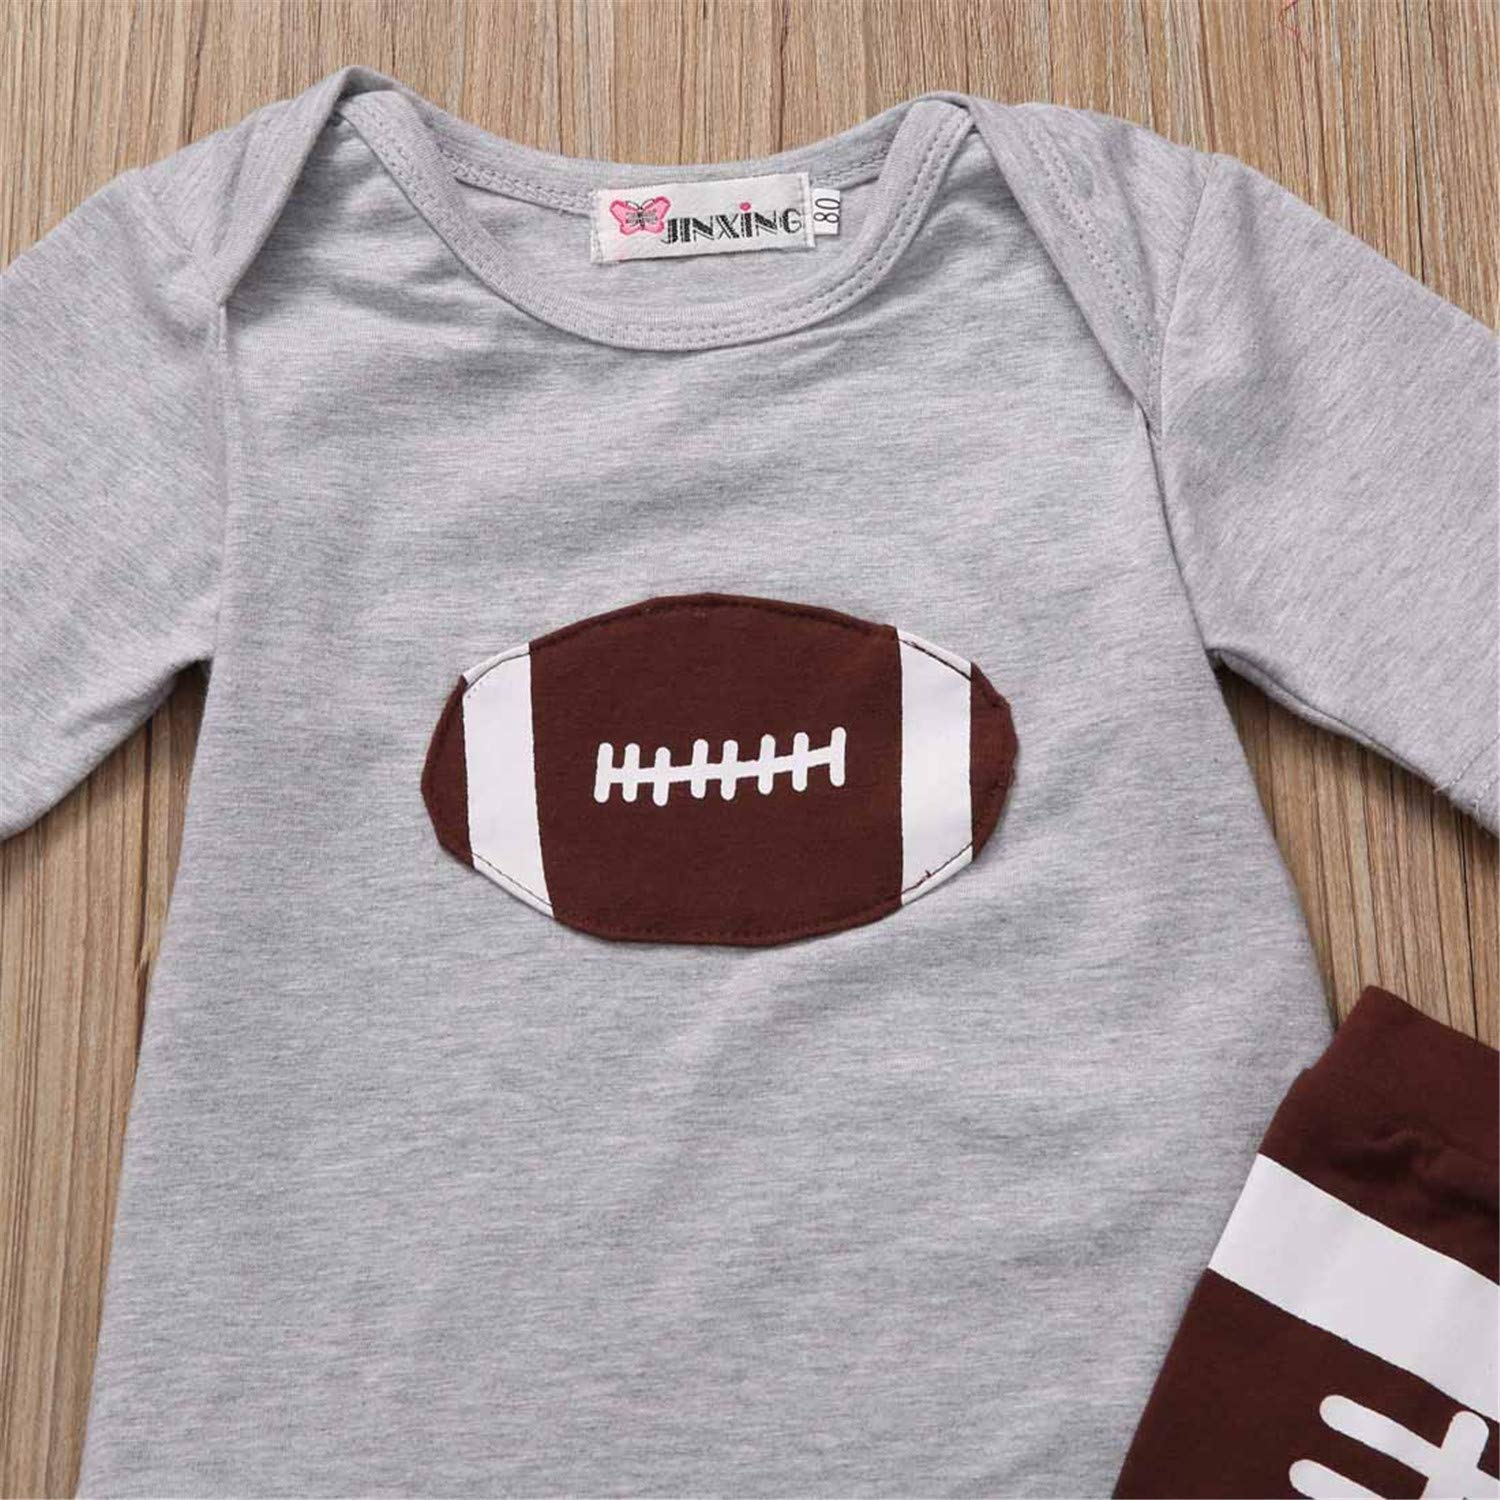 Fashion New 2PCS New Newborn Kids Baby Boys Girls Football Print Clothes Tops Short Sleeve T-Shirt Leggings Outfits Set